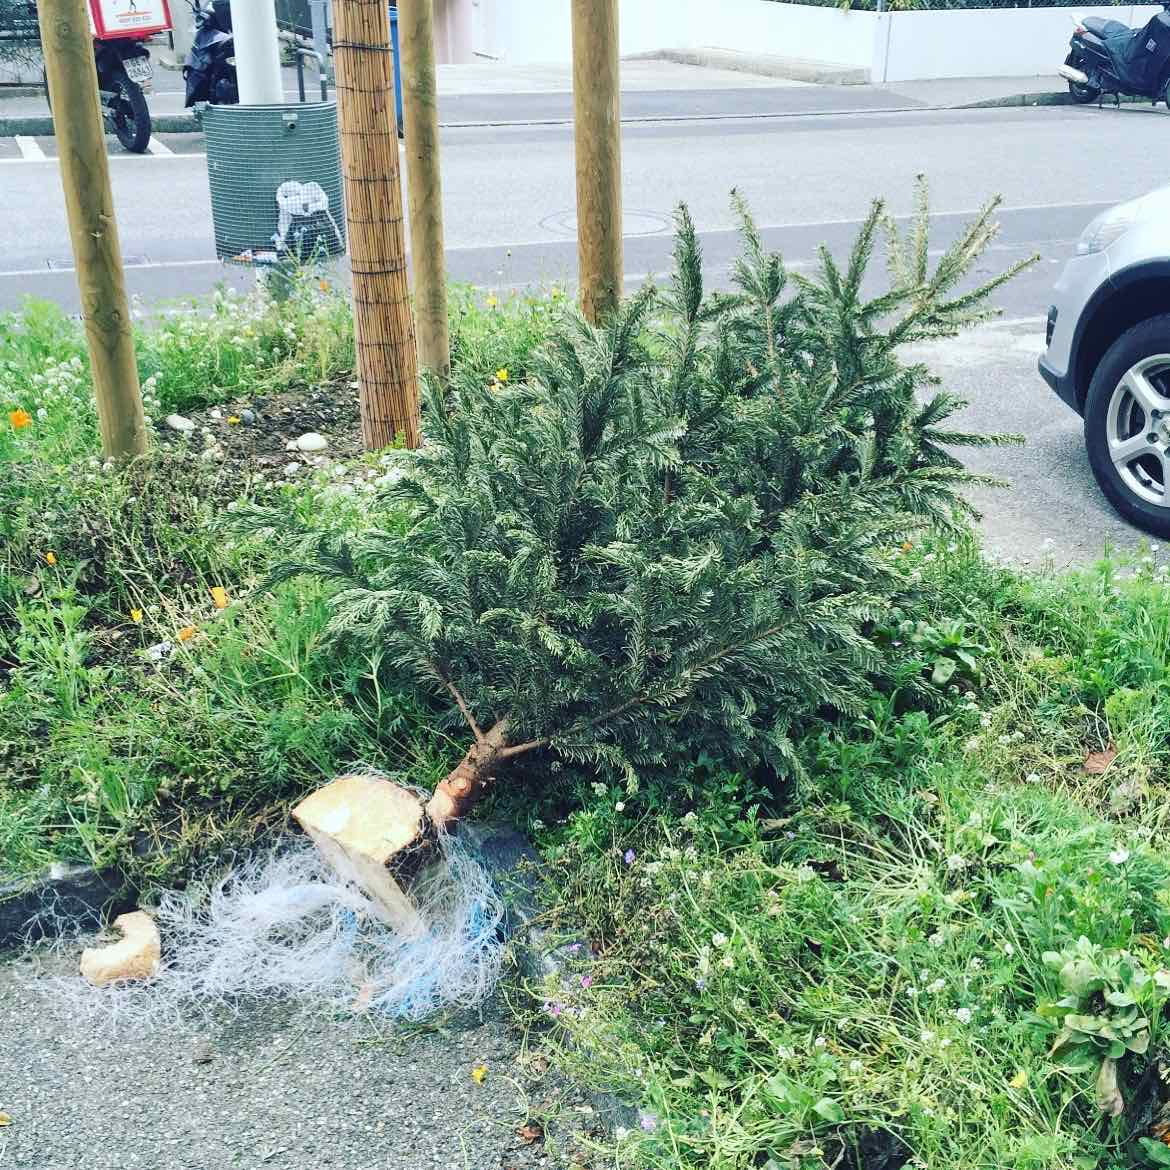 The owner of this xmas tree probably thought it would be nice to leave him close to a nature surrounding. The xmas tree was so sad to be left alone that he hugged the grass desperately to feel less lonely but fainted by asphyxiation.